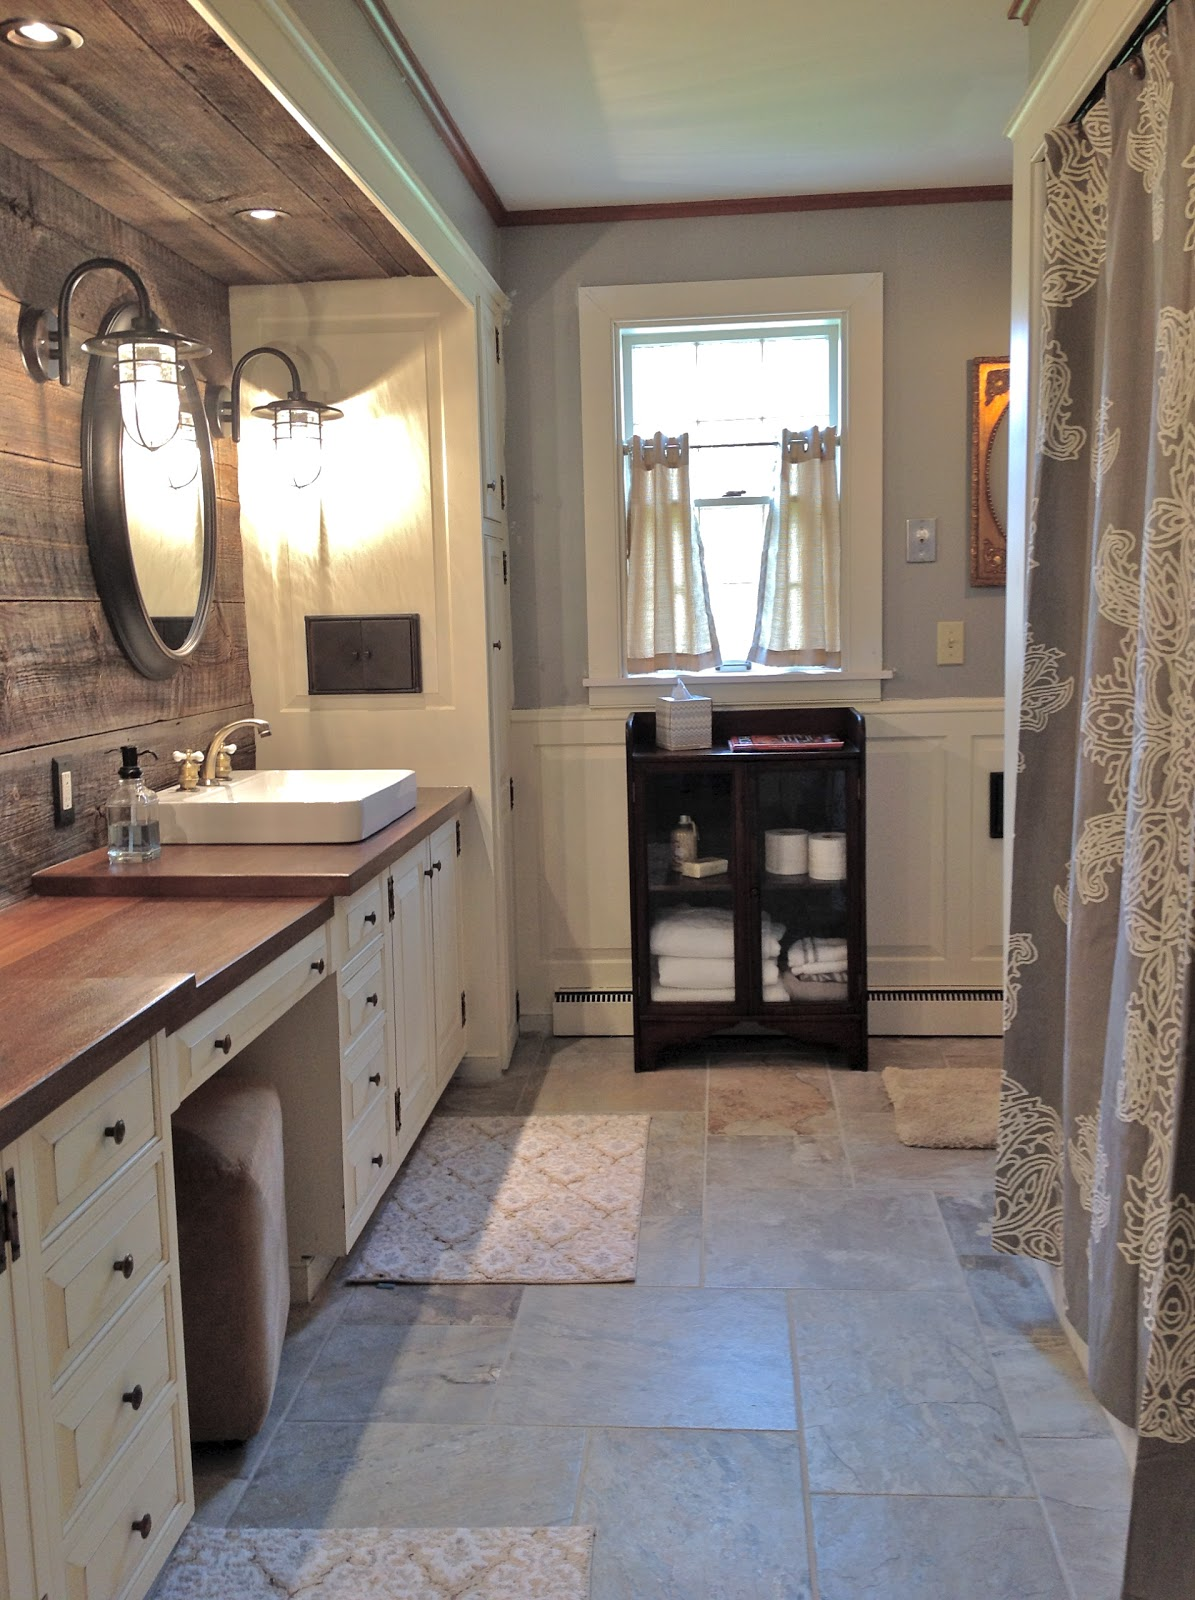 route 2 rural: Farmhouse Bathroom Remodel -- Done! on Farmhouse Bathroom Ideas  id=12536